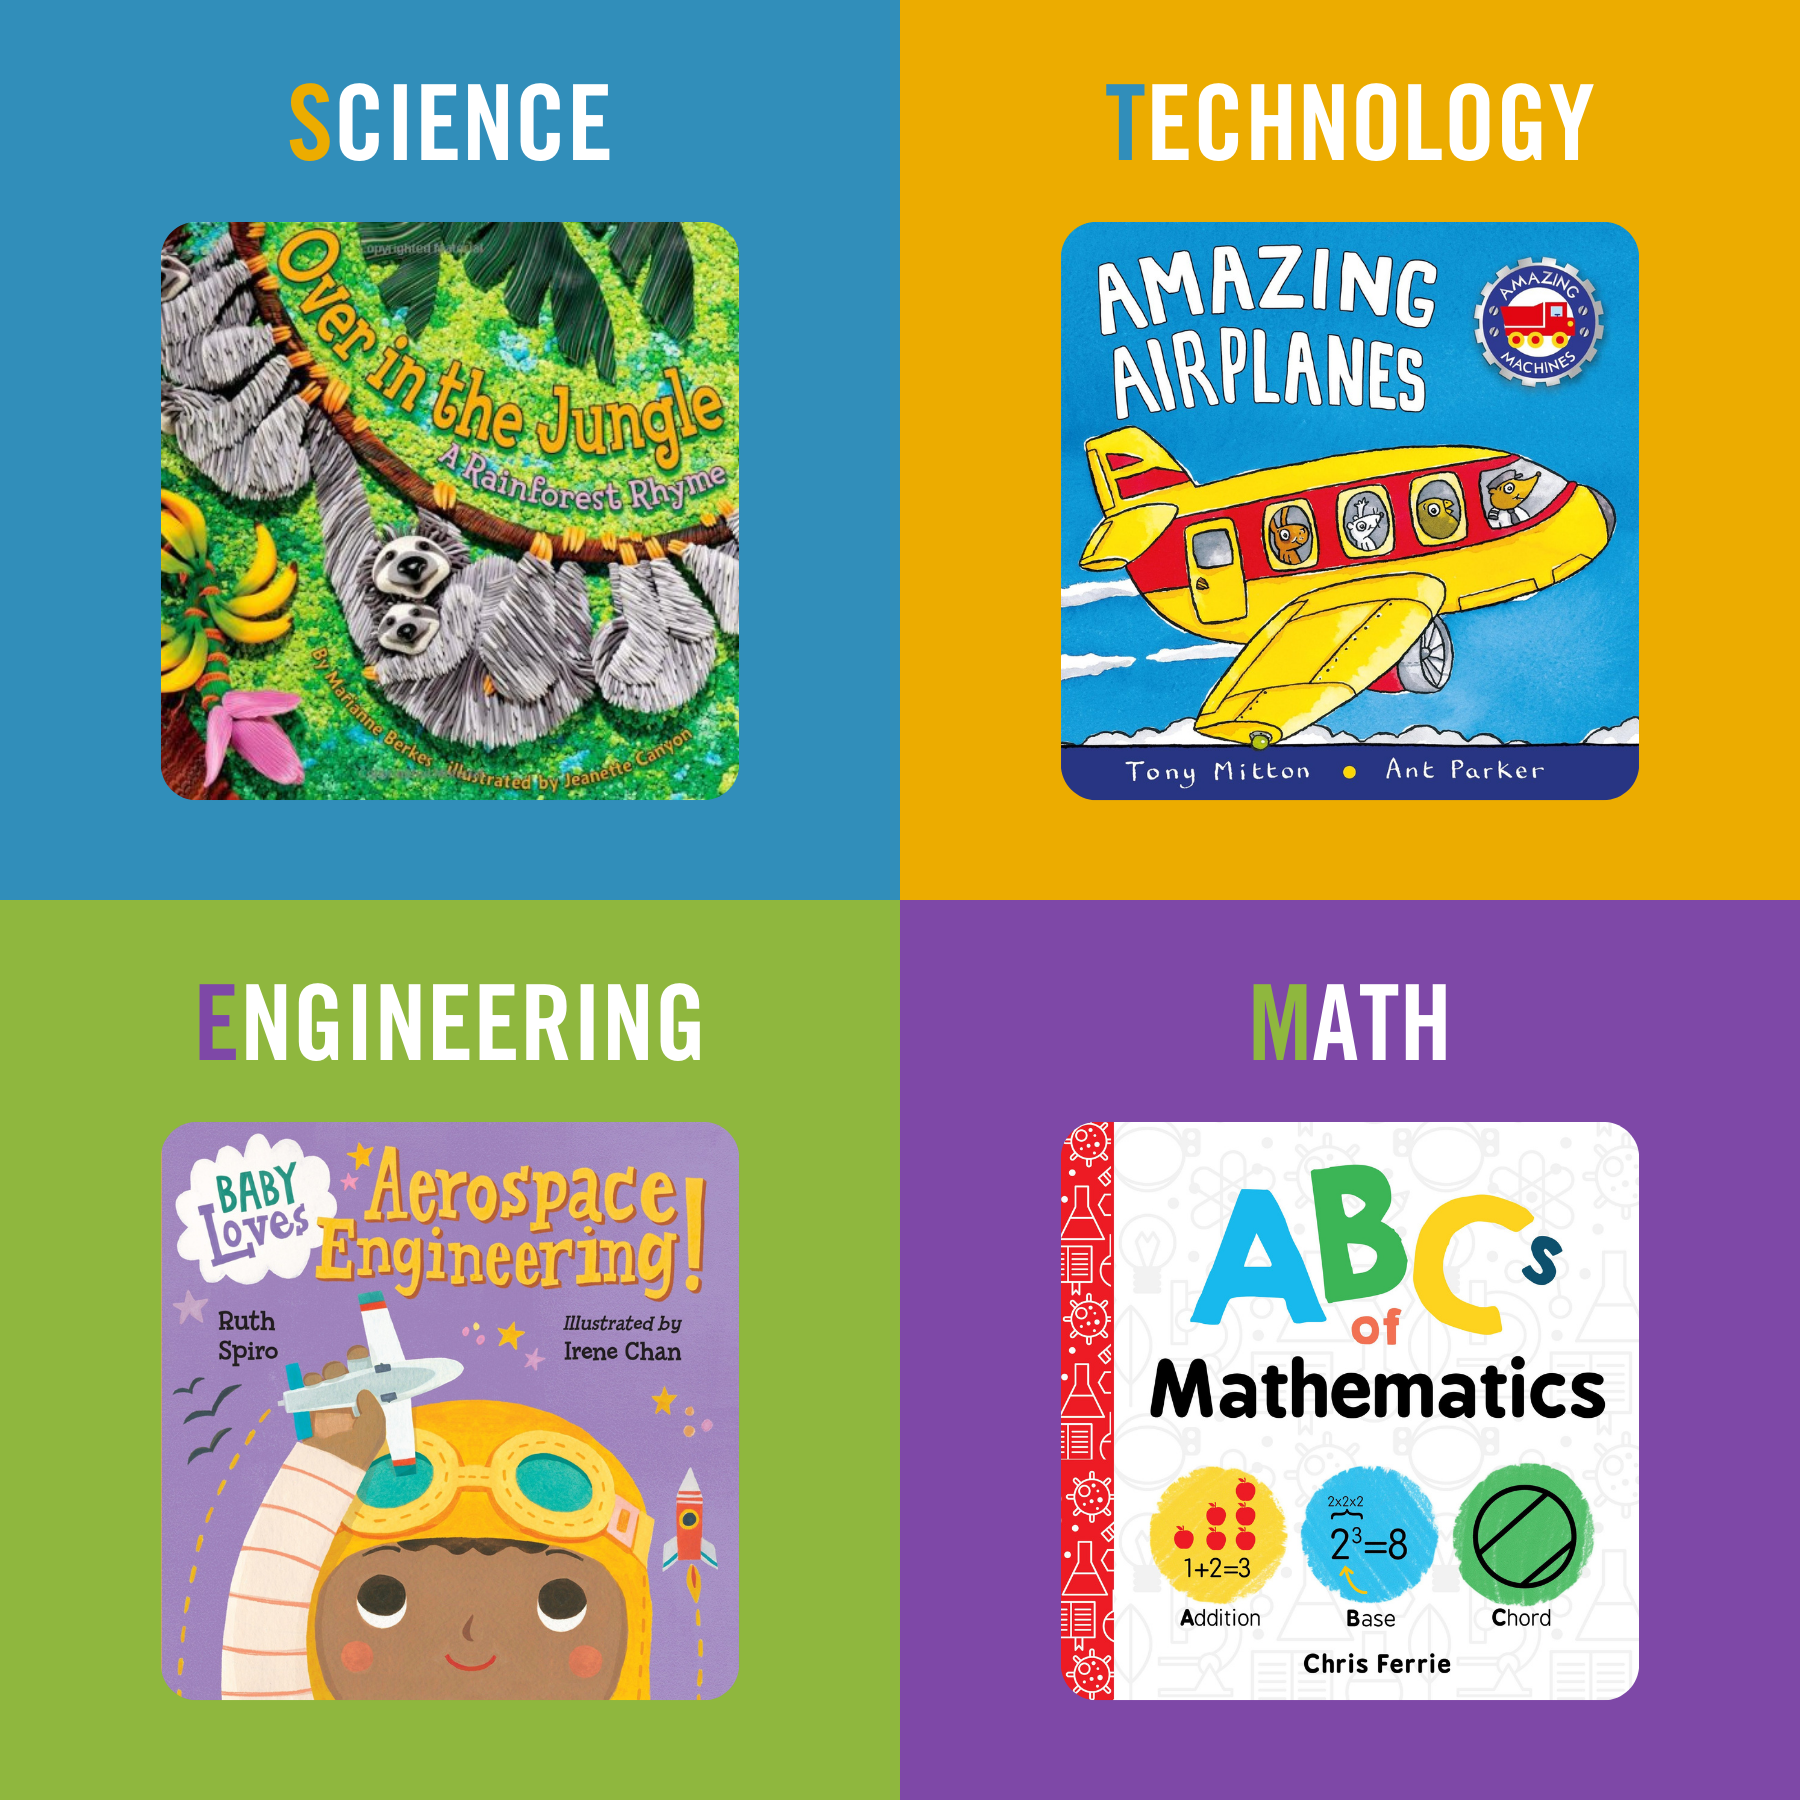 STEM Article Graphic (July 2021)